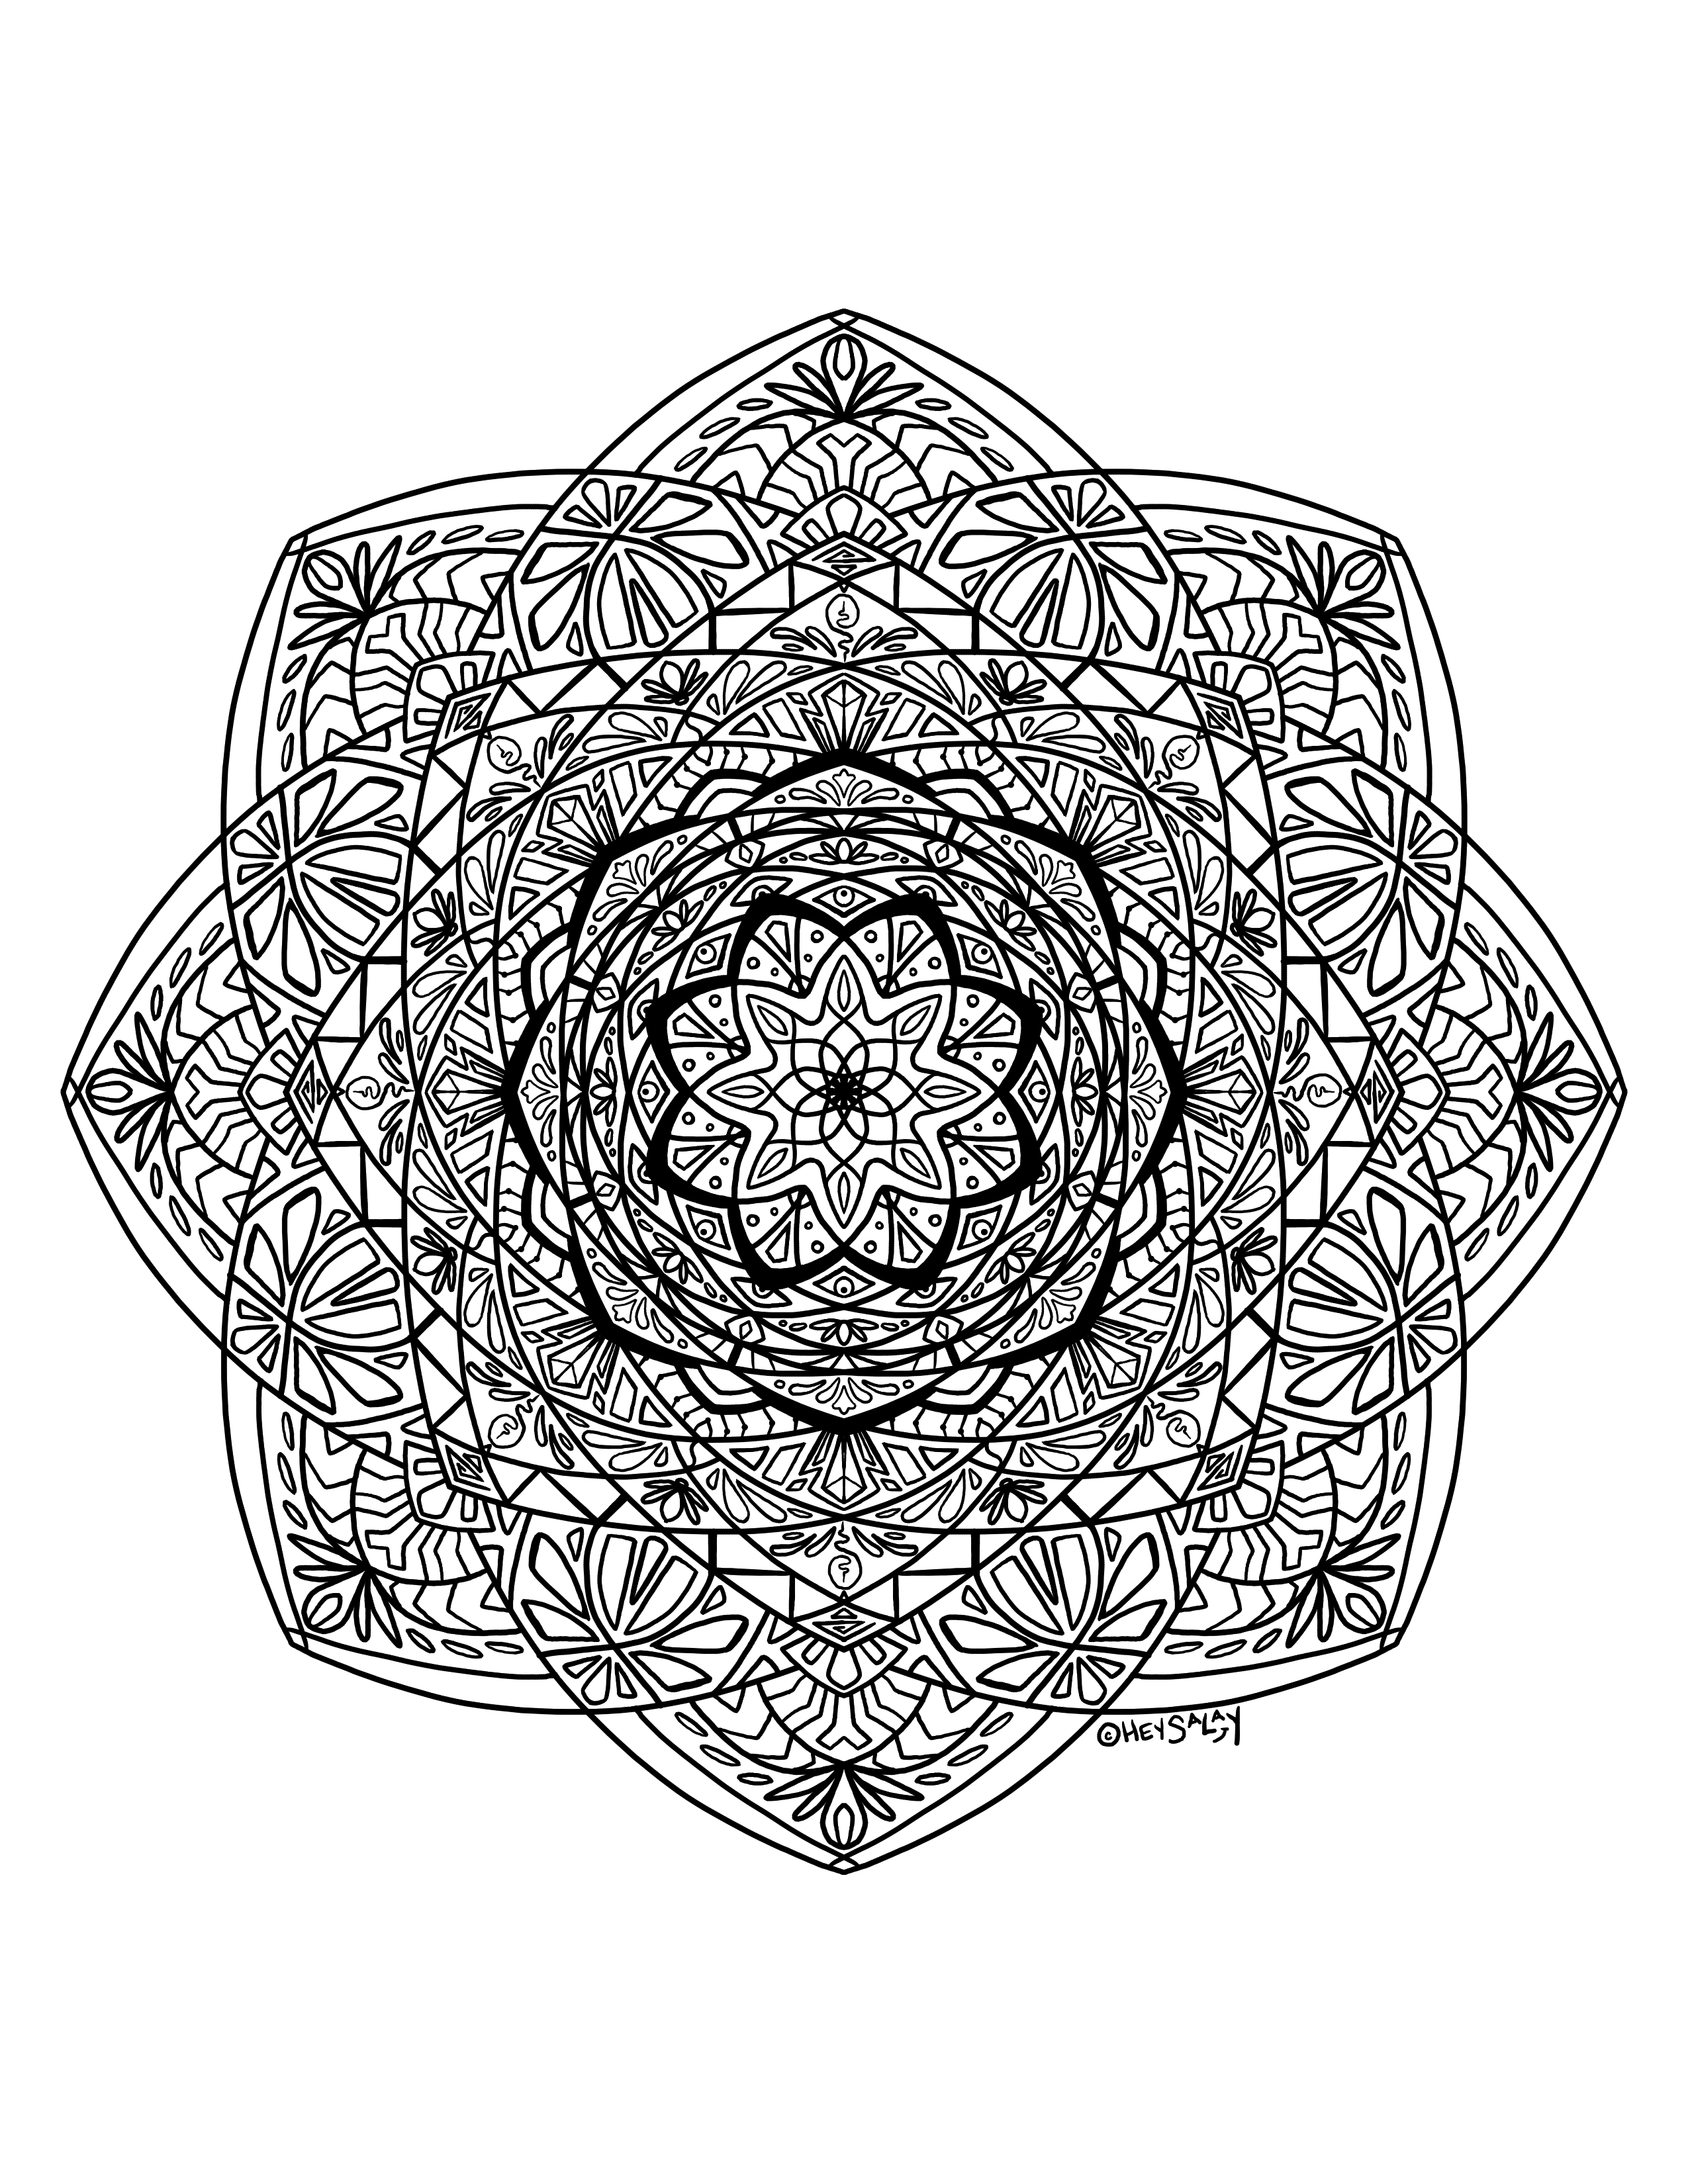 Mandala by Brittany Salay